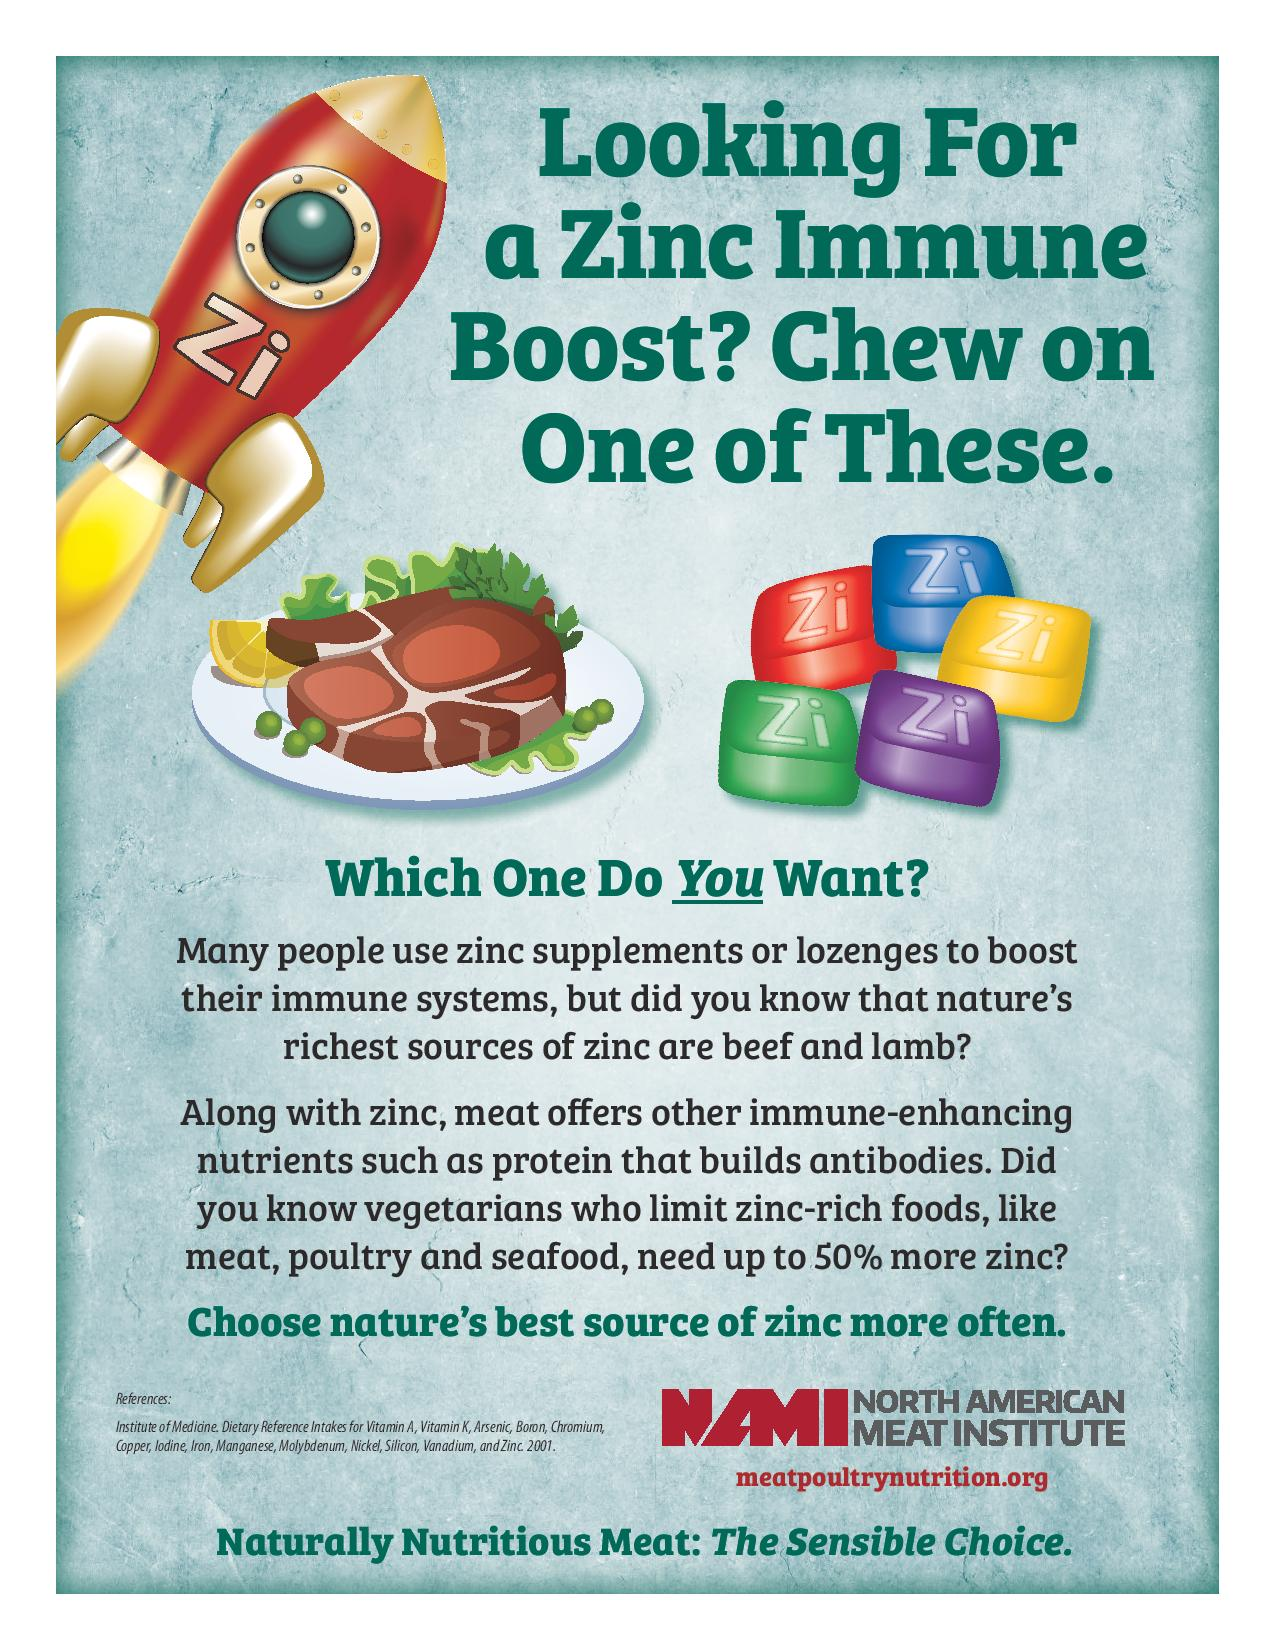 Looking For a Zinc Immune Boost?